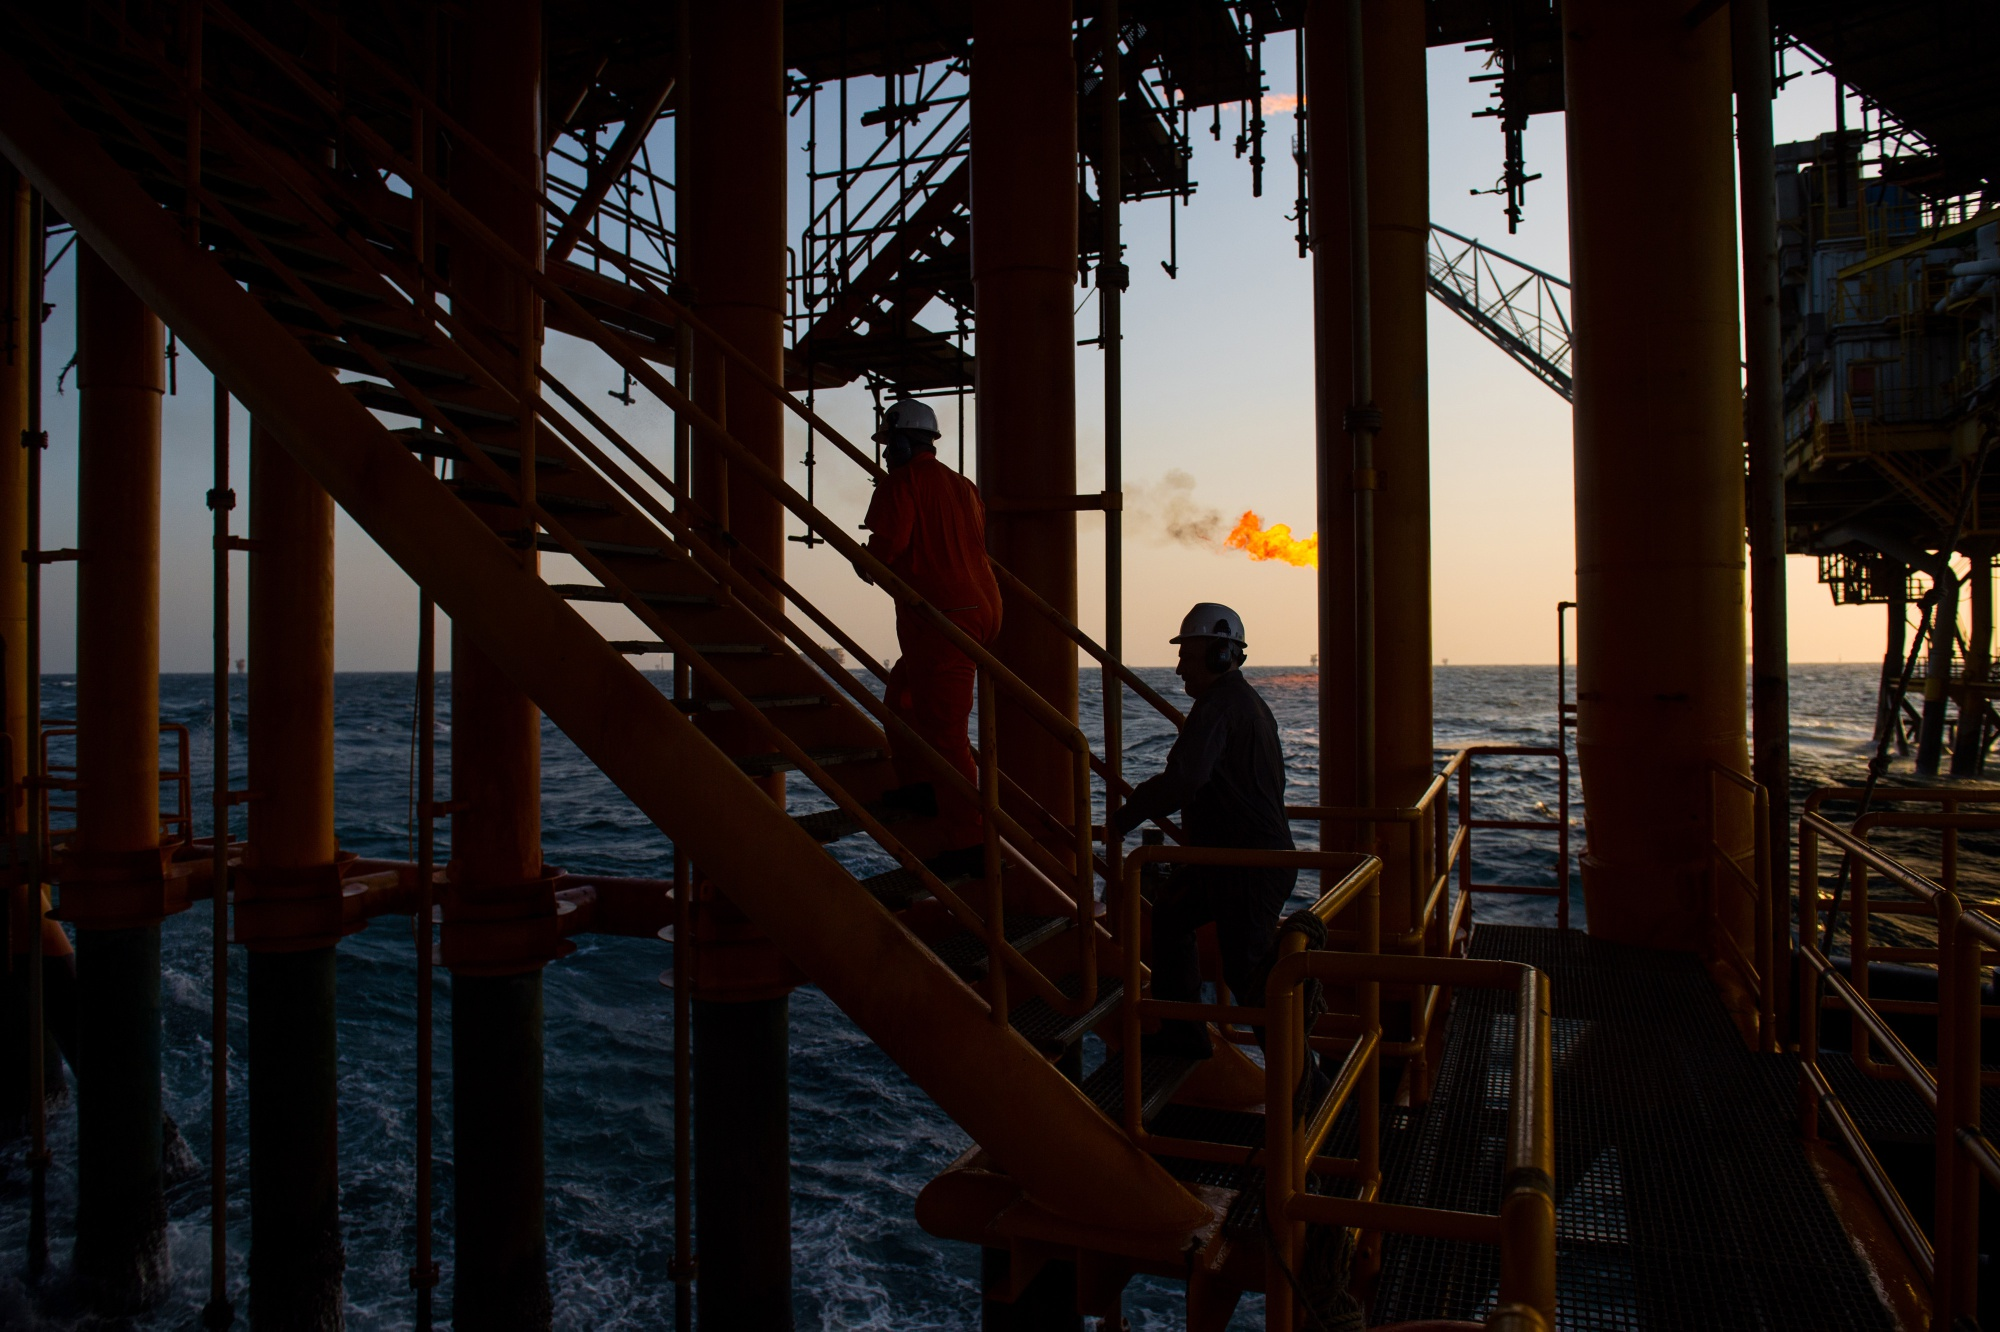 Workers climb stairs from a lower deck aboard an offshore oil platform in the Persian Gulf's Salman Oil Field, operated by the National Iranian Offshore Oil Co., near Lavan island, Iran, on Thursday, Jan. 5. 2017. Photographer: Ali Mohammadi/Bloomberg